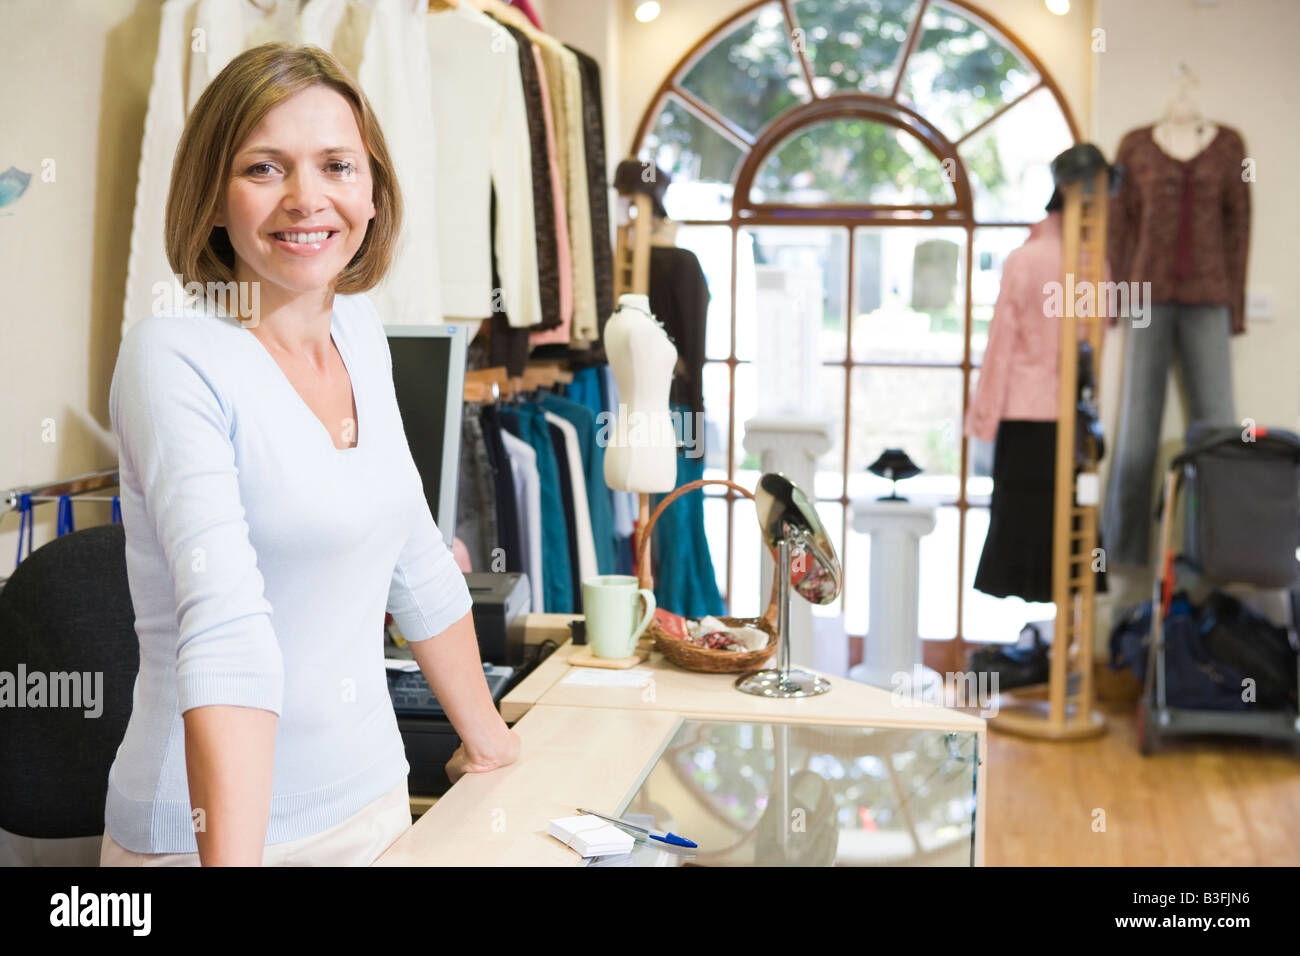 Woman at clothing store smiling - Stock Image